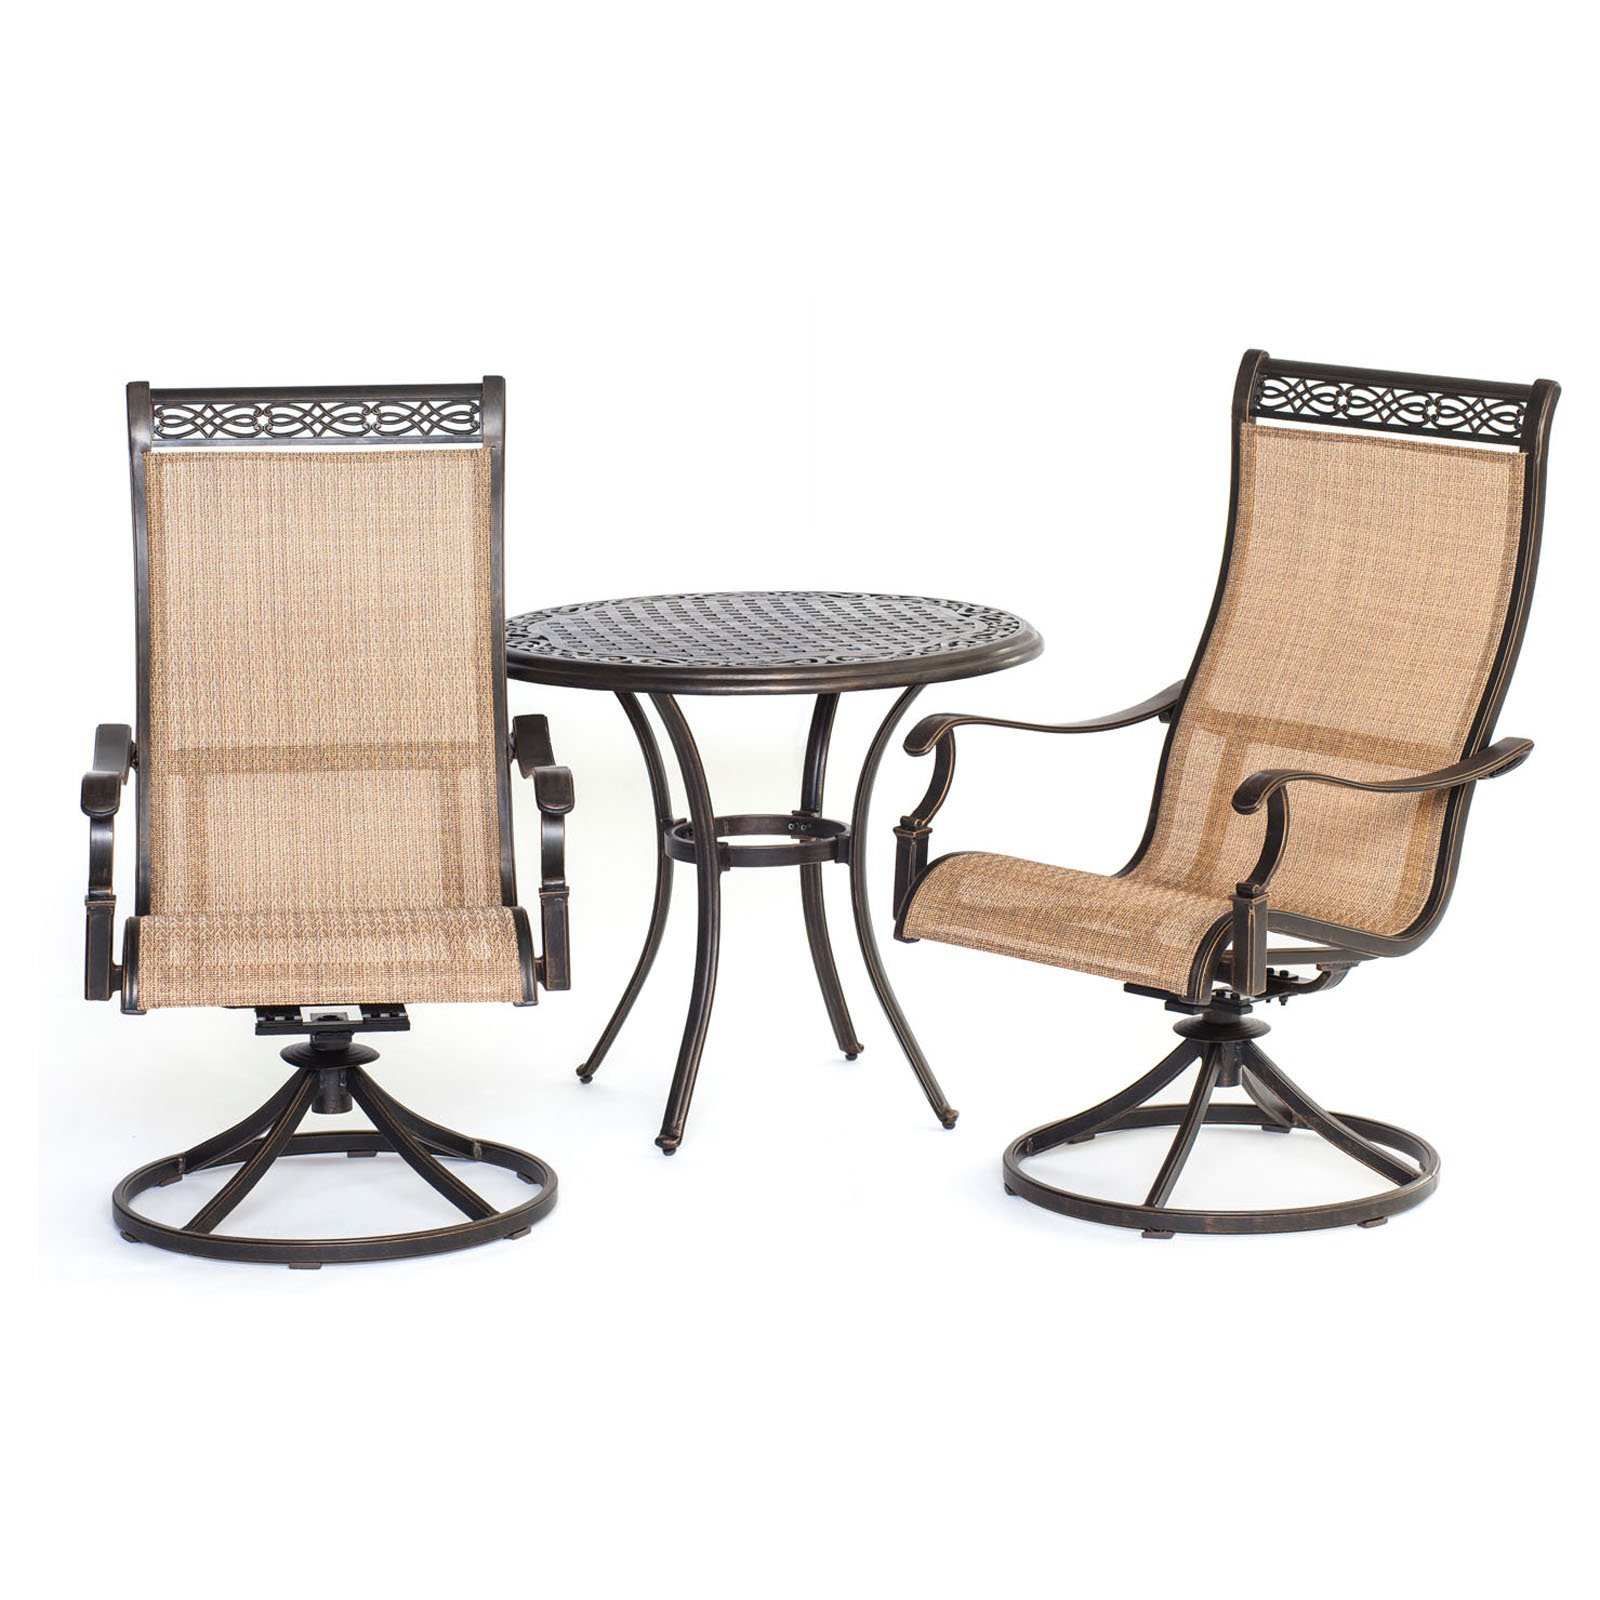 Hanover Outdoor Manor 3-Piece Bistro Set, Cedar/Bronze